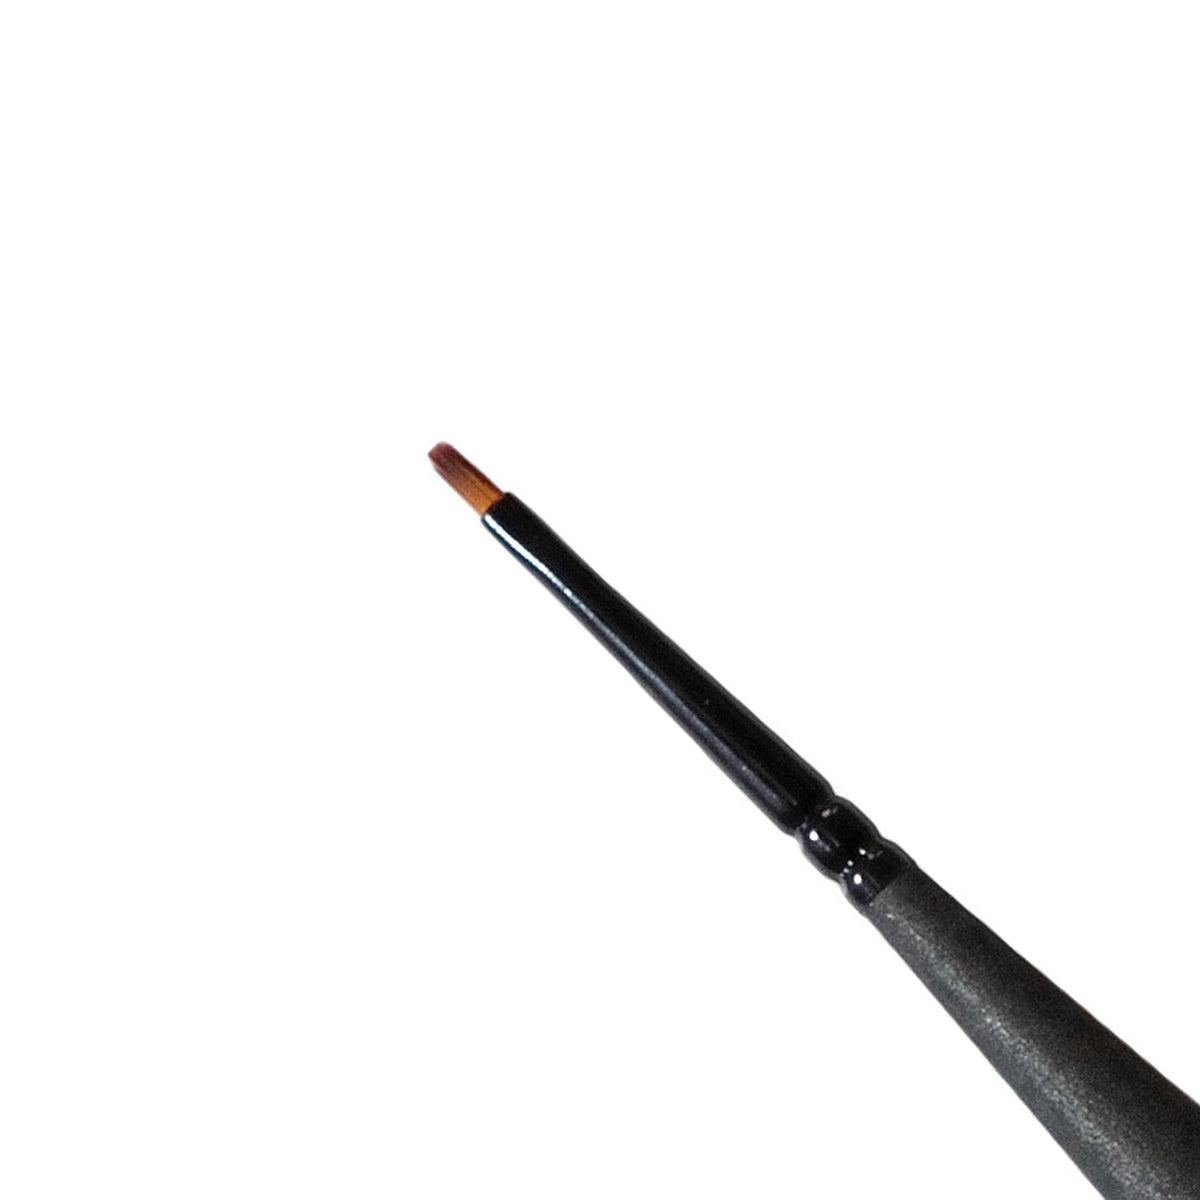 Royal & Langnickel Majestic Mini Shader 2/0 Brush - Red Carpet FX - Professional Makeup